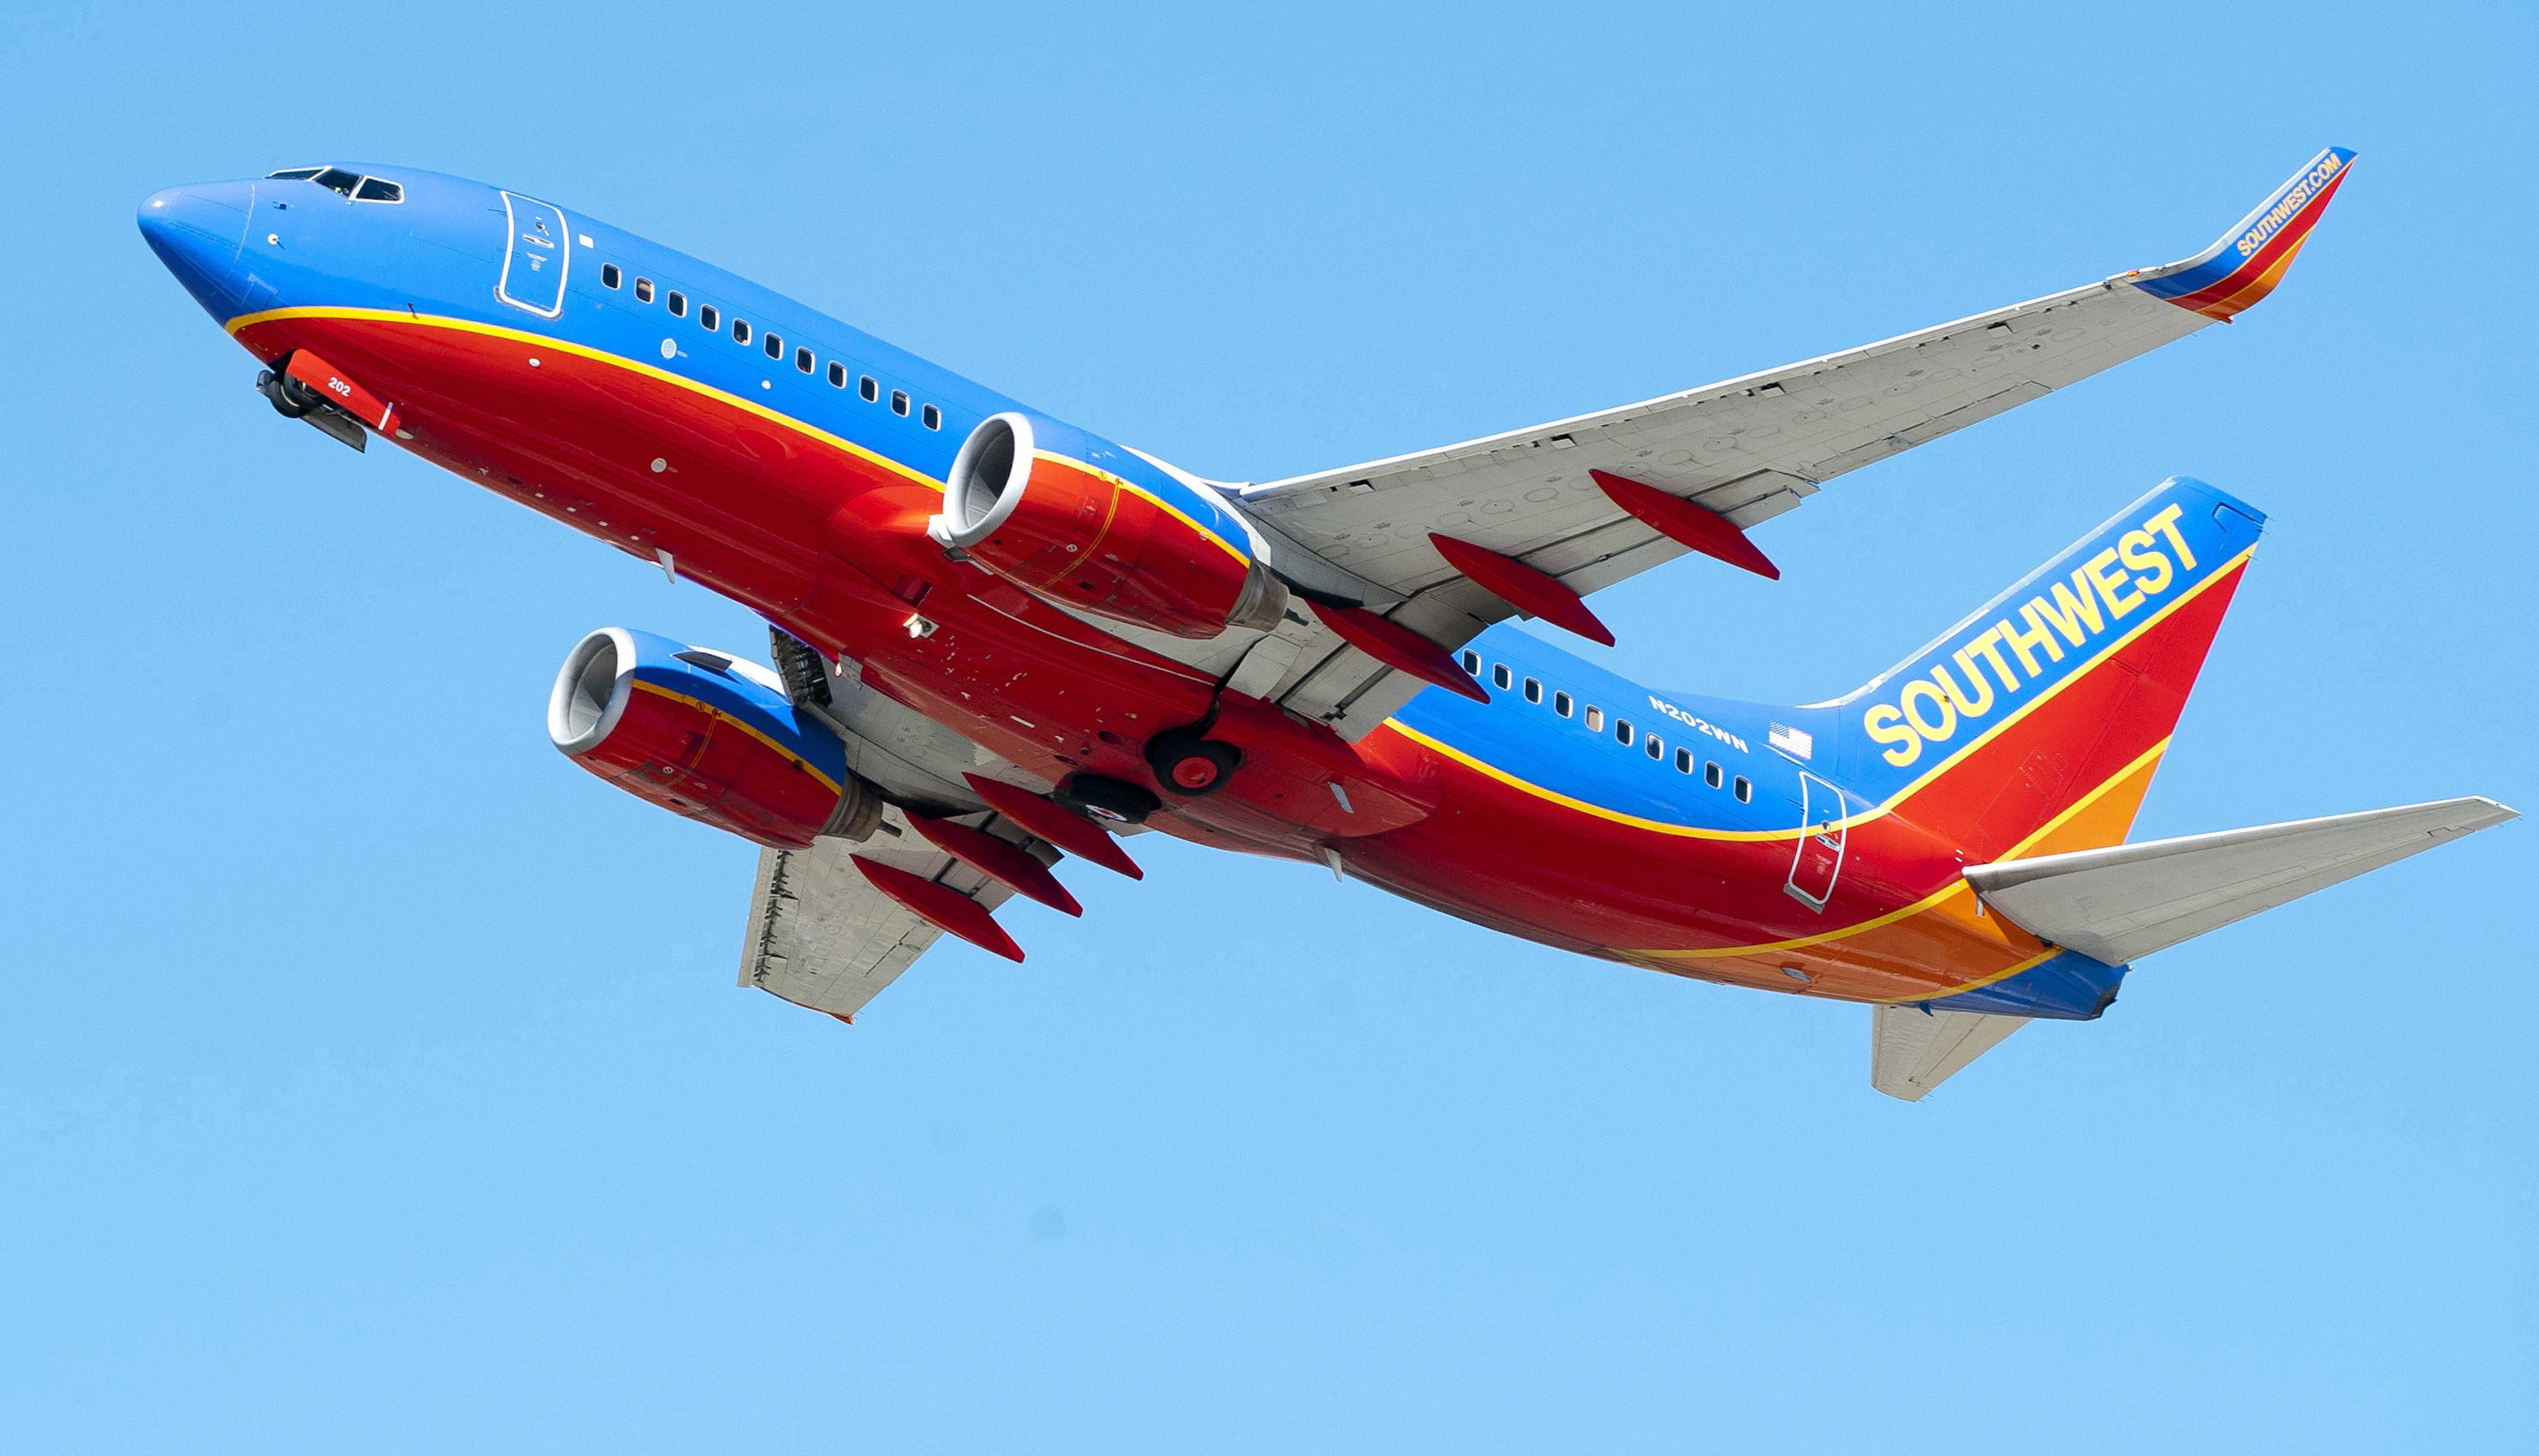 A Southwest Airlines Boeing 737 takes off at Los Angeles International Airport in 2015. Southwest Airlines reported a second quarter profit of $746 million on Thursday. (David Bro/Zuma Press/TNS)